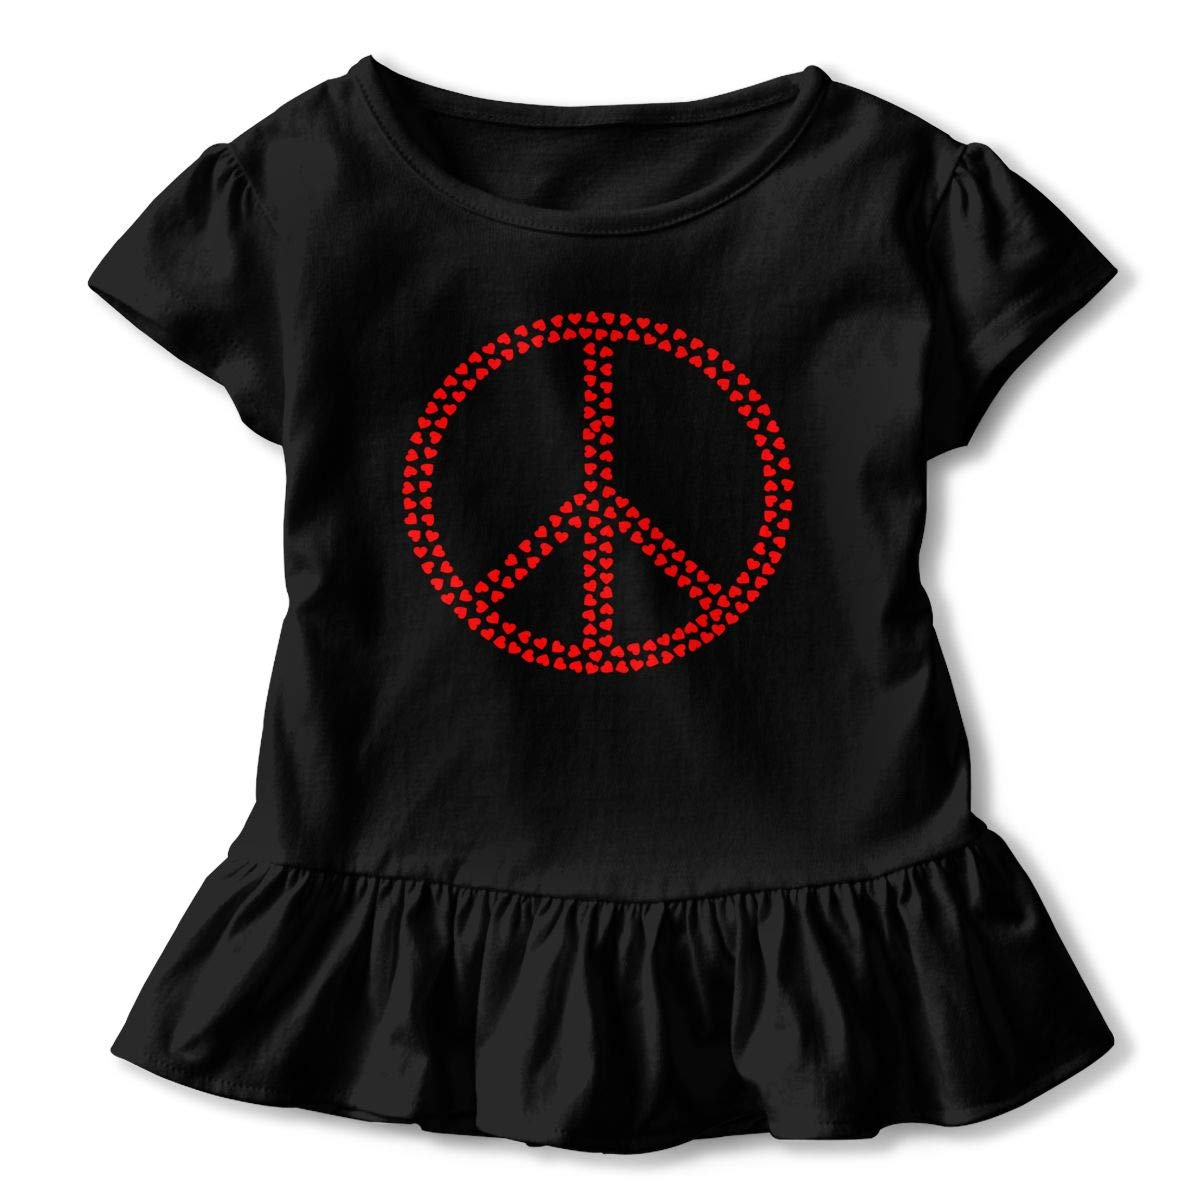 JVNSS Peace Hearts Shirt Soft Toddler Girls Flounced T Shirts Outfits for 2-6T Baby Girls